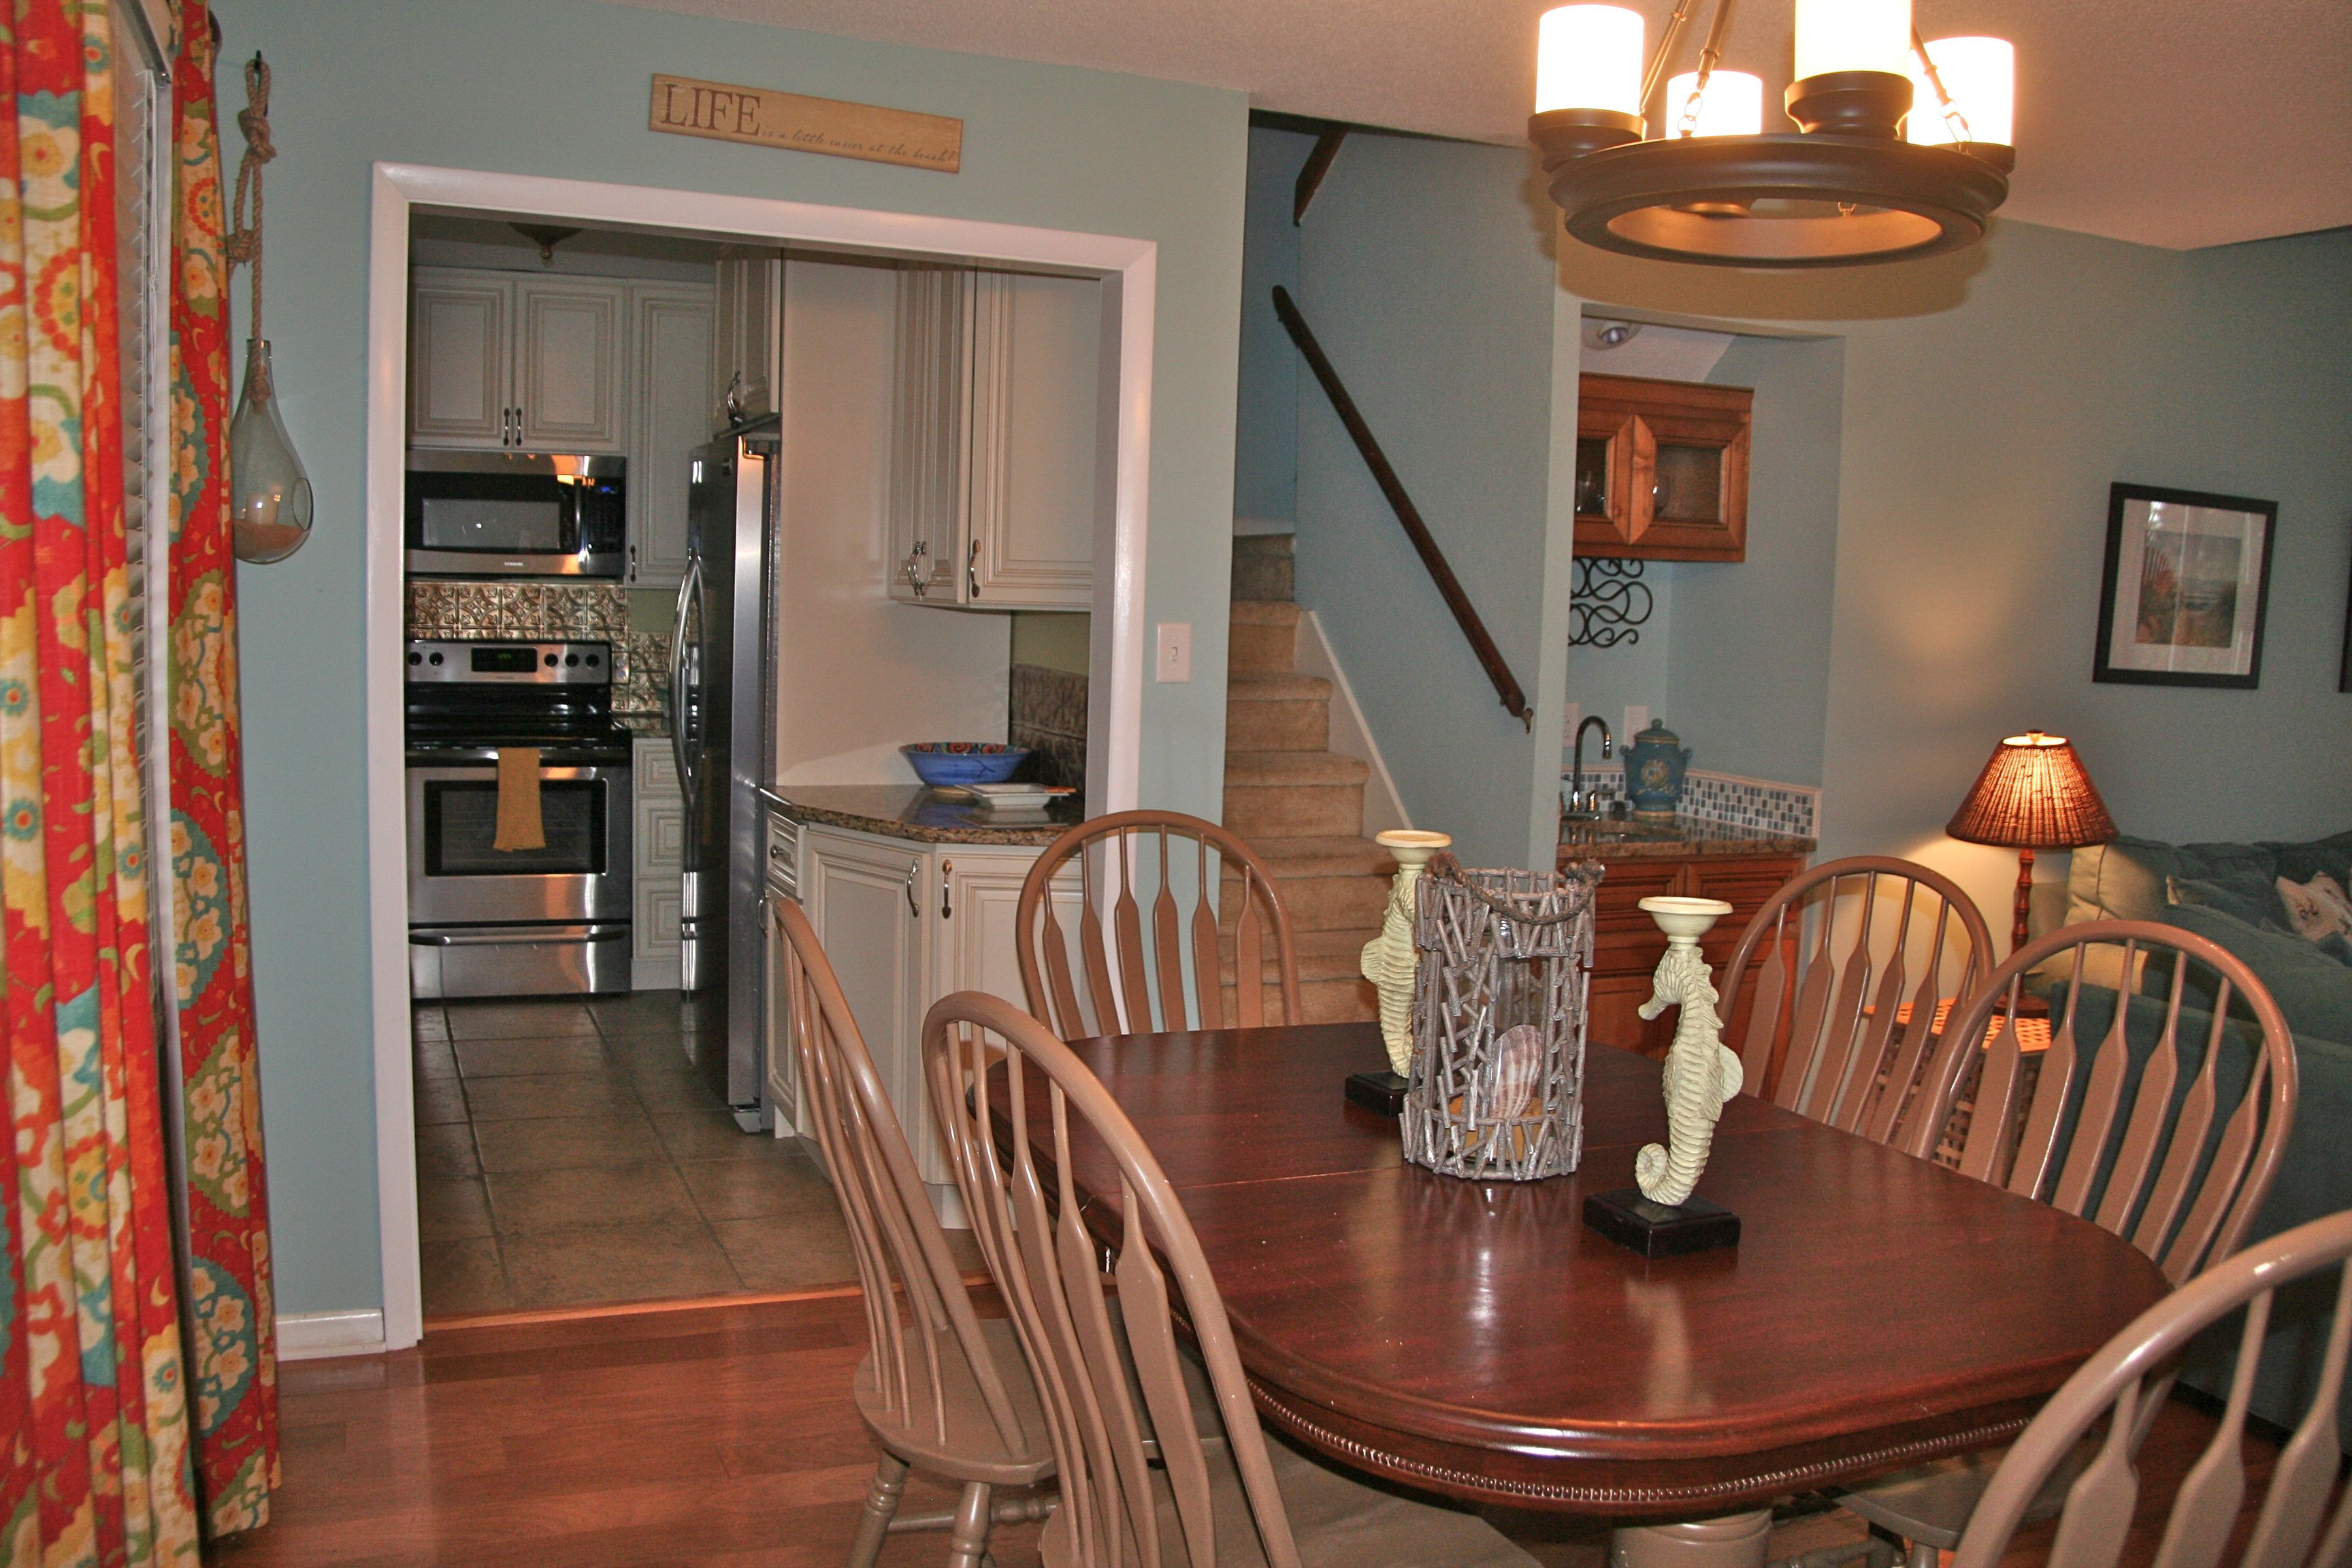 The dining room area seats 6 and is steps from the kitchen and the living room.